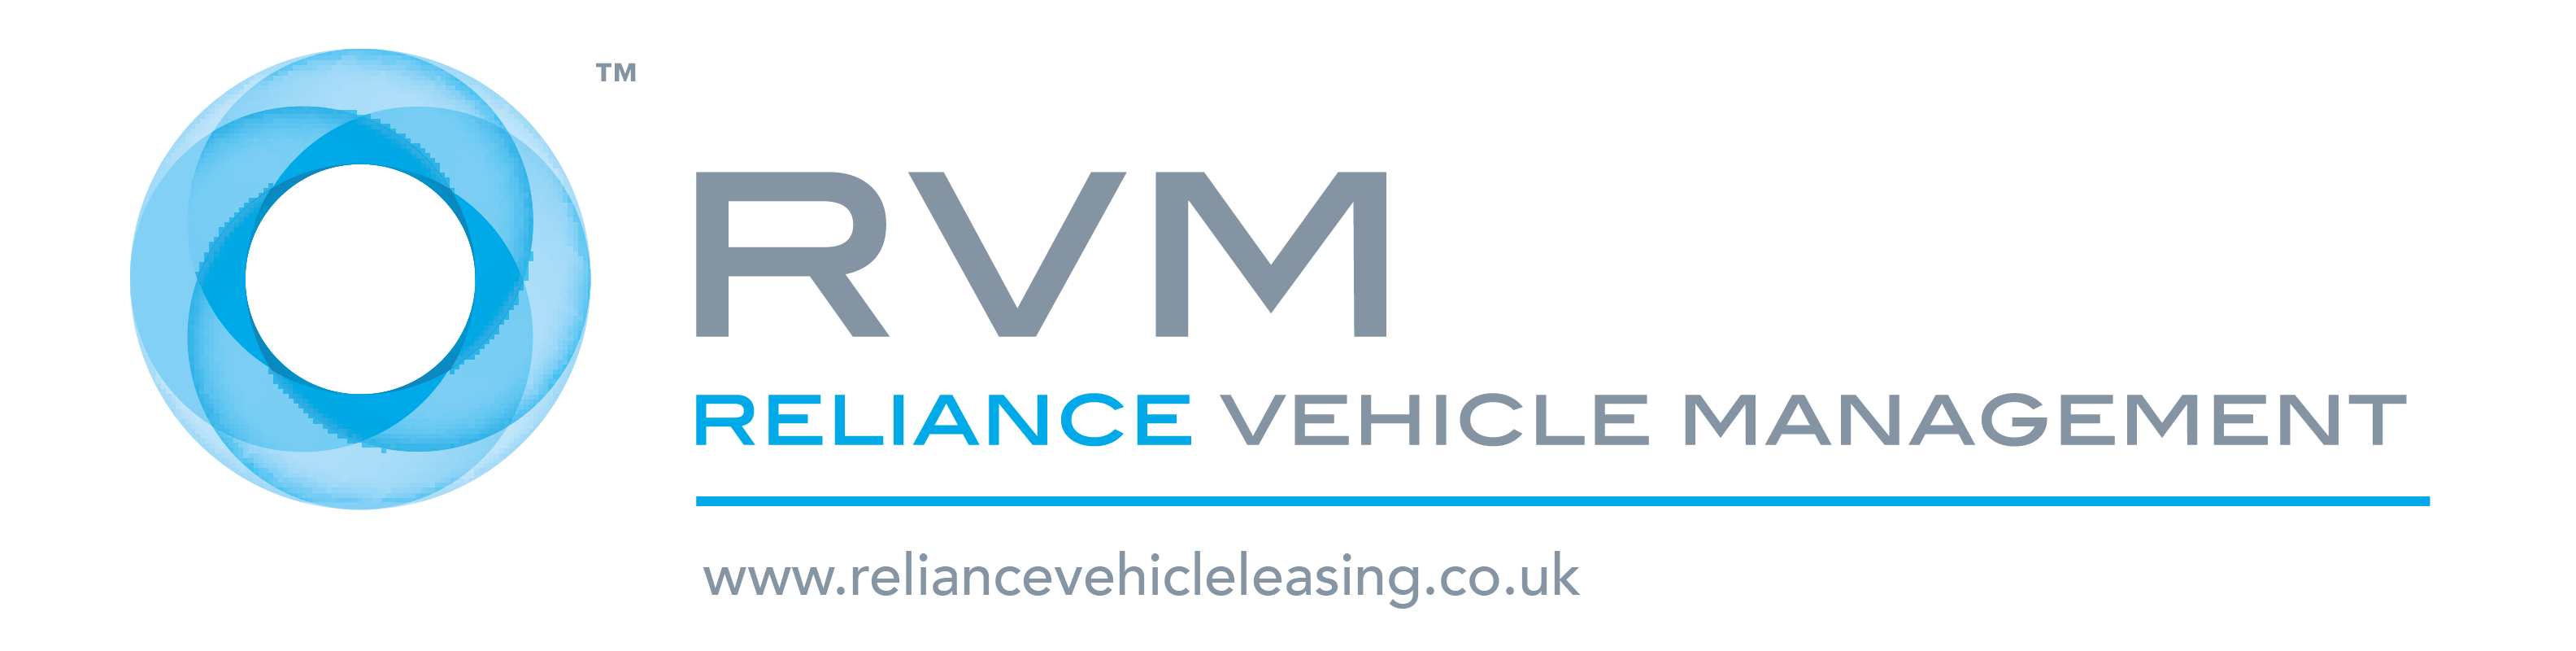 Reliance Vehicle Leasing